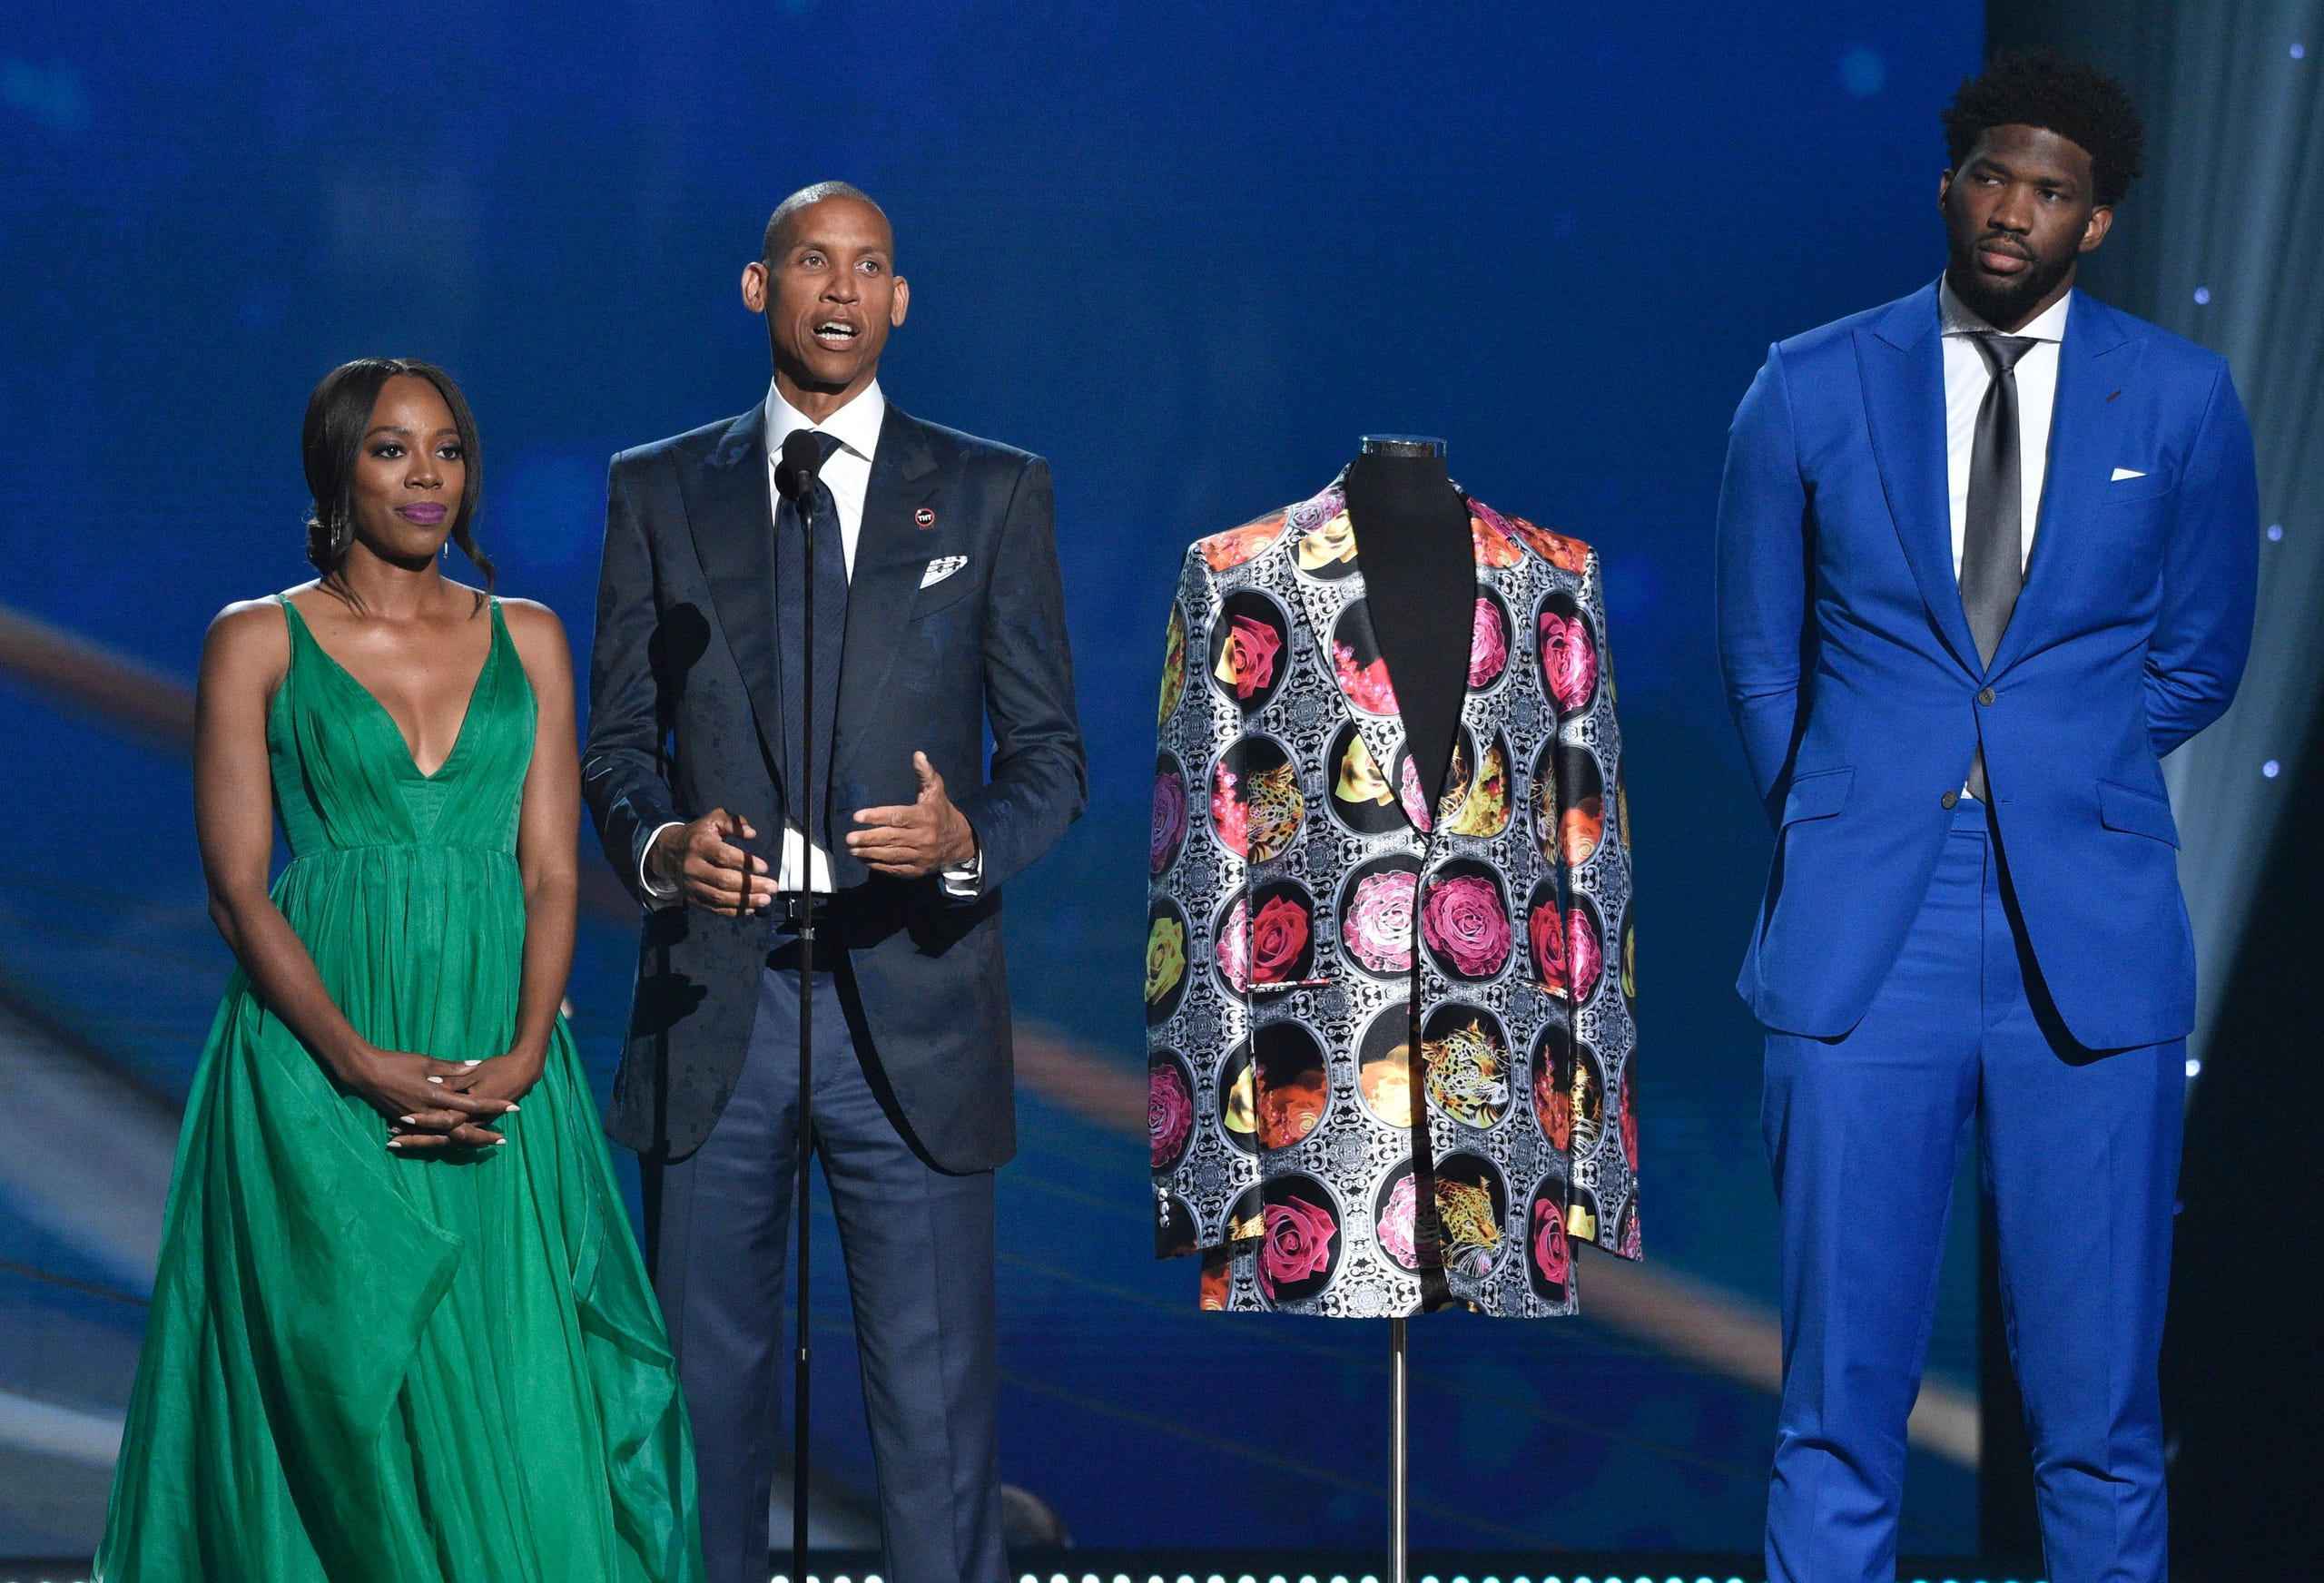 cad7ad75598 Best photos from 2018 NBA Awards